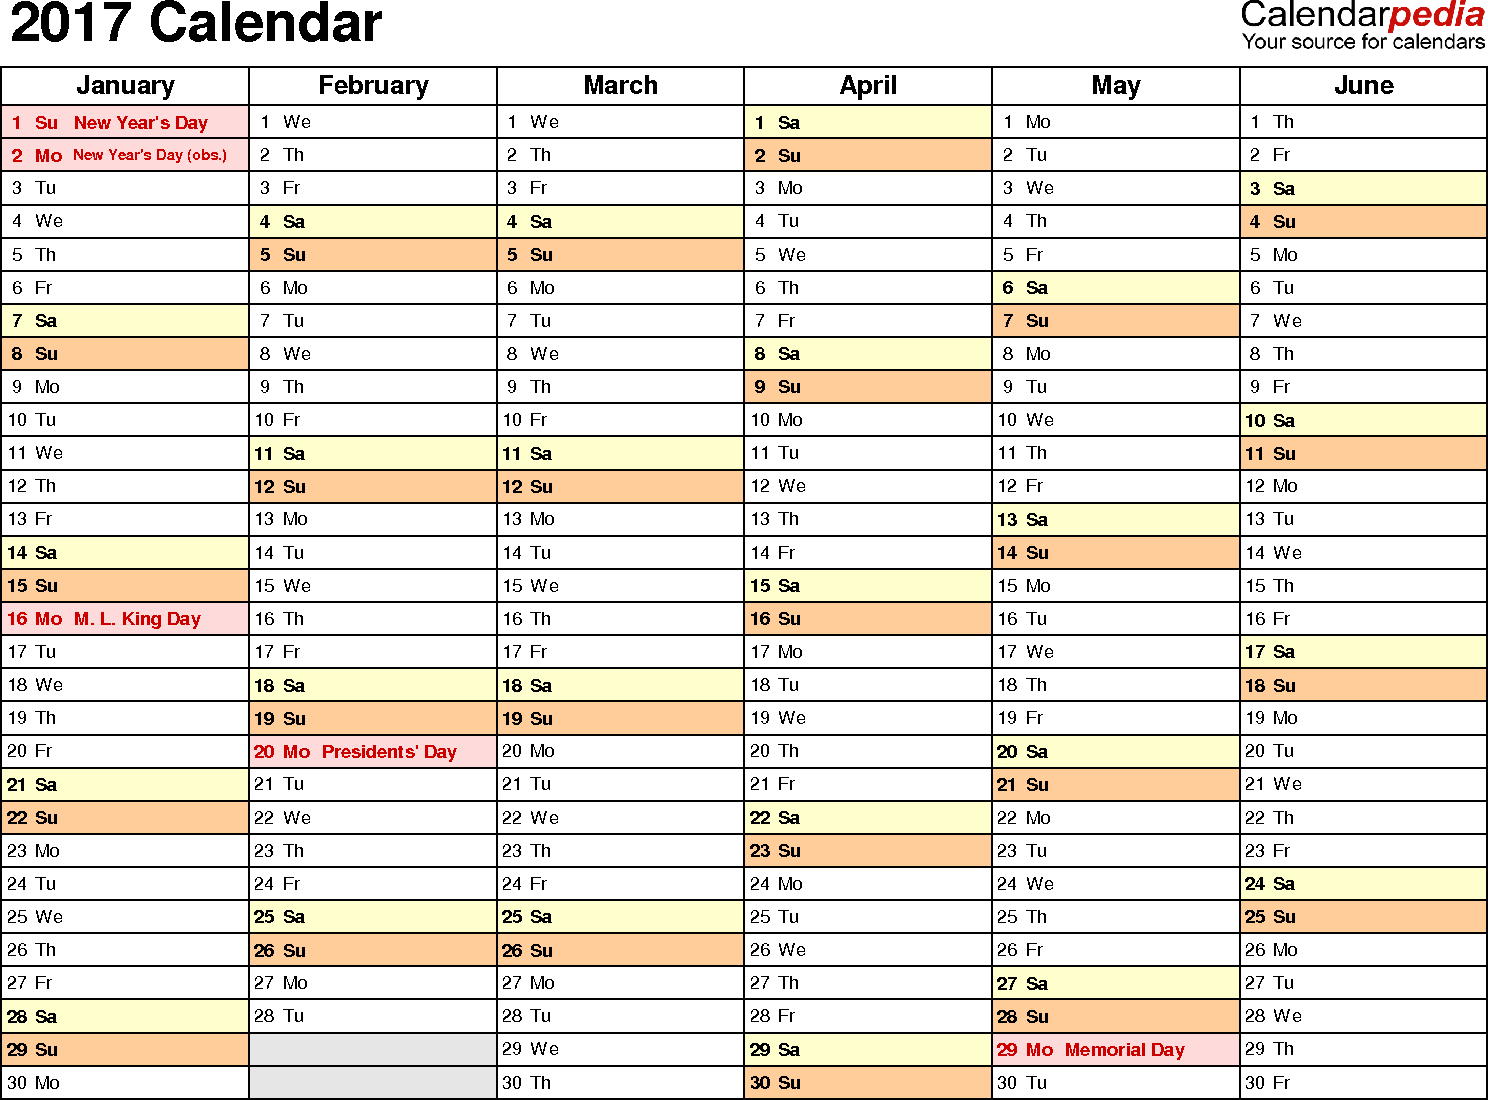 Ediblewildsus  Unique  Calendar  Download  Free Printable Excel Templates Xls With Remarkable Template   Calendar For Excel Months Horizontally  Pages Landscape Orientation With Enchanting Excel Contact Template Also Awesome Excel Spreadsheets In Addition Downside Deviation Excel And How To Calculate Discount Percentage In Excel As Well As Removing Excel Password Additionally Excel Vba Protect From Calendarpediacom With Ediblewildsus  Remarkable  Calendar  Download  Free Printable Excel Templates Xls With Enchanting Template   Calendar For Excel Months Horizontally  Pages Landscape Orientation And Unique Excel Contact Template Also Awesome Excel Spreadsheets In Addition Downside Deviation Excel From Calendarpediacom